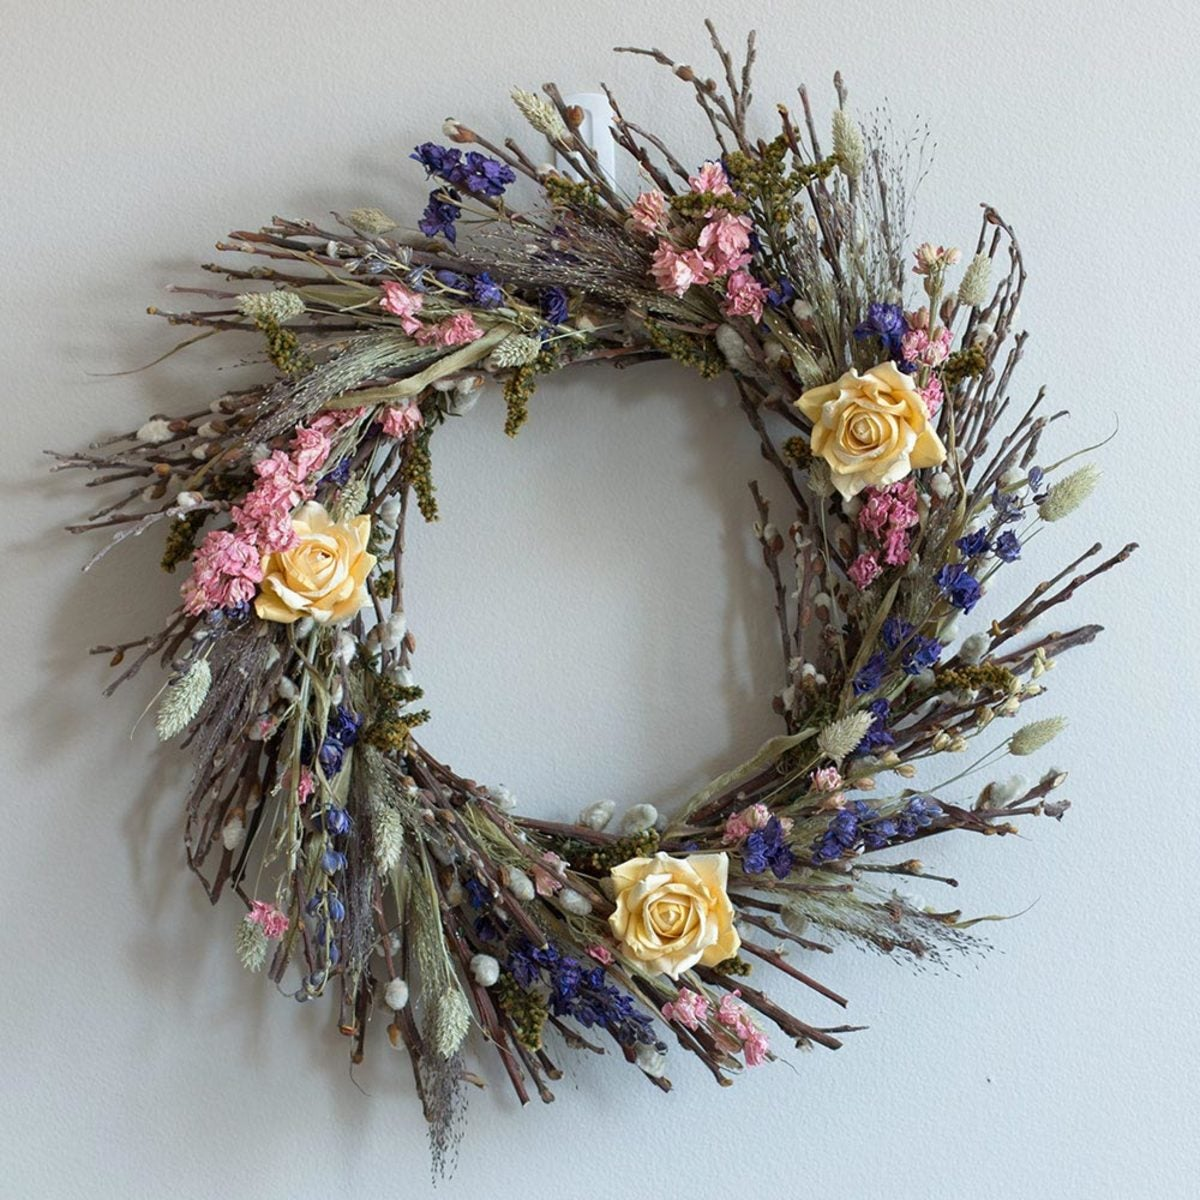 Flowering Willow Wreath